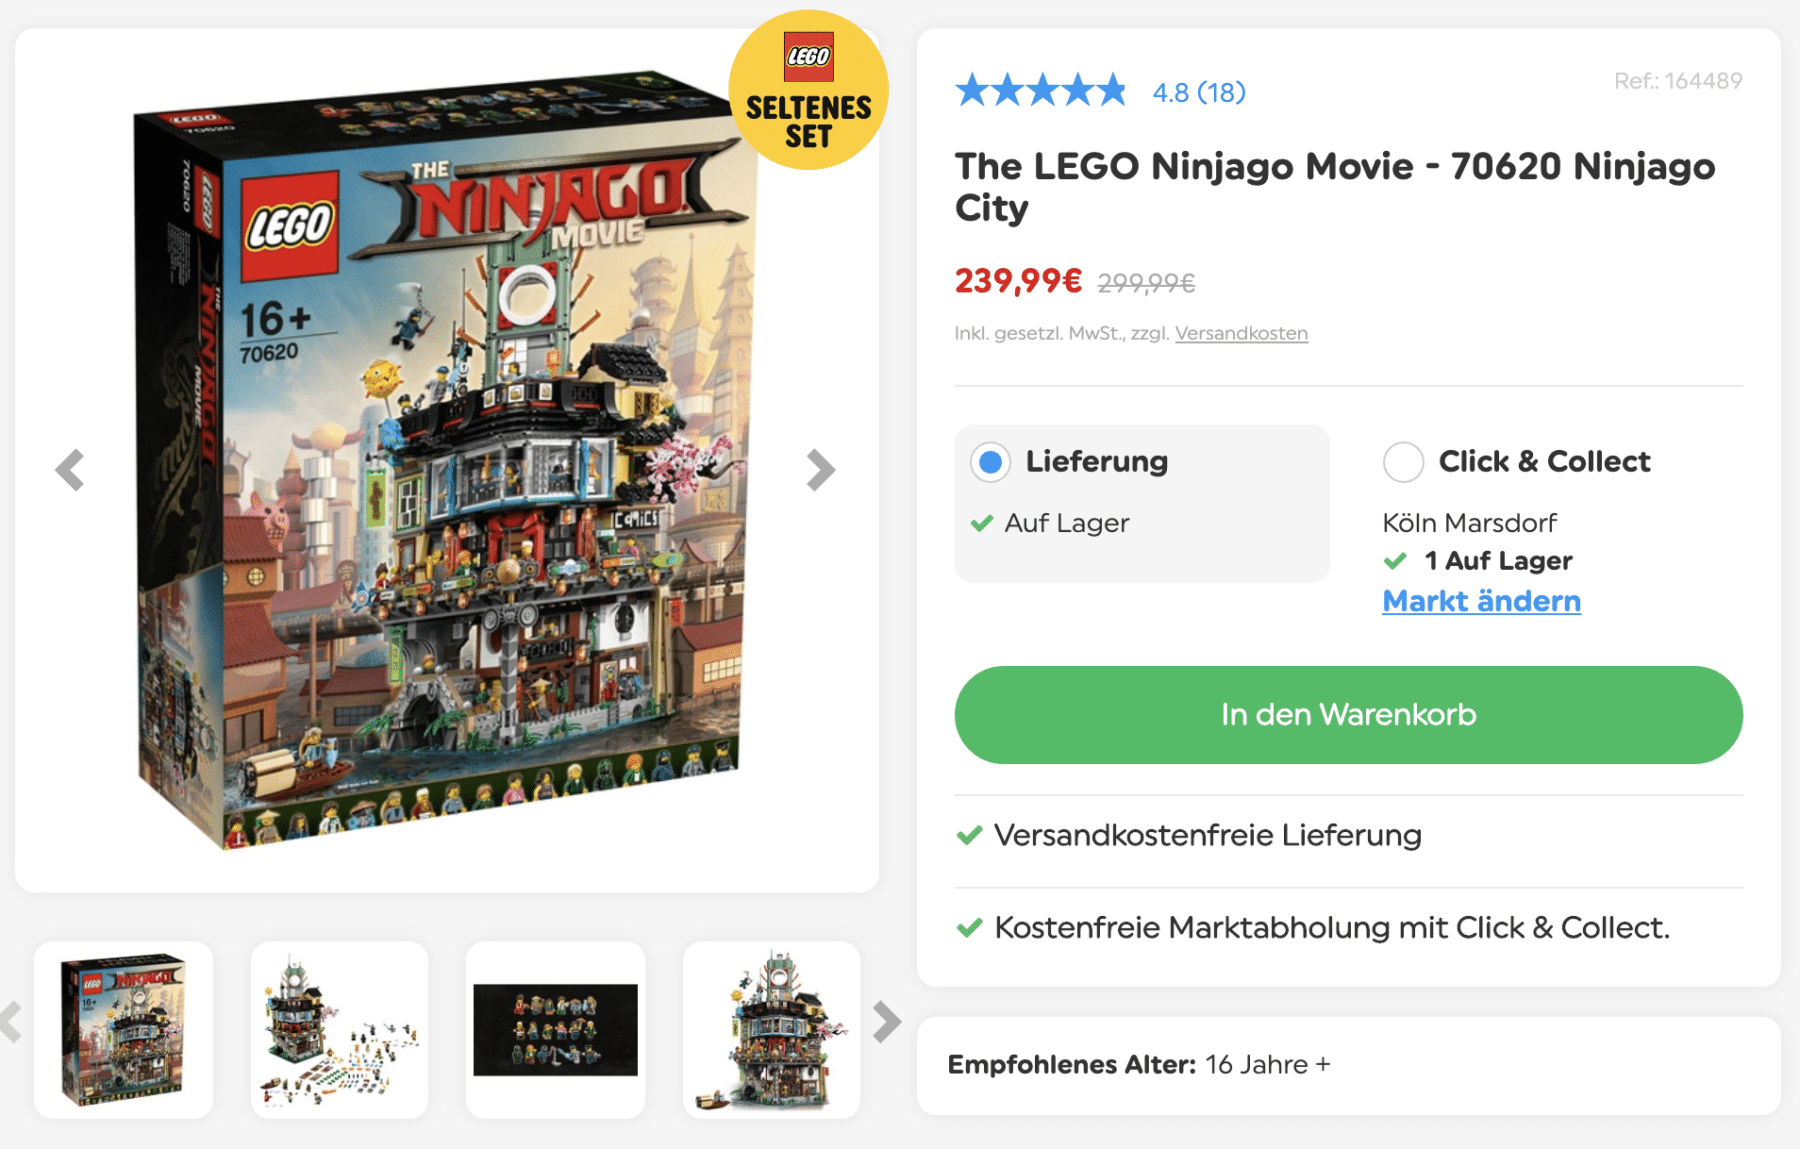 LEOG 70620 Ninjago City Angebot